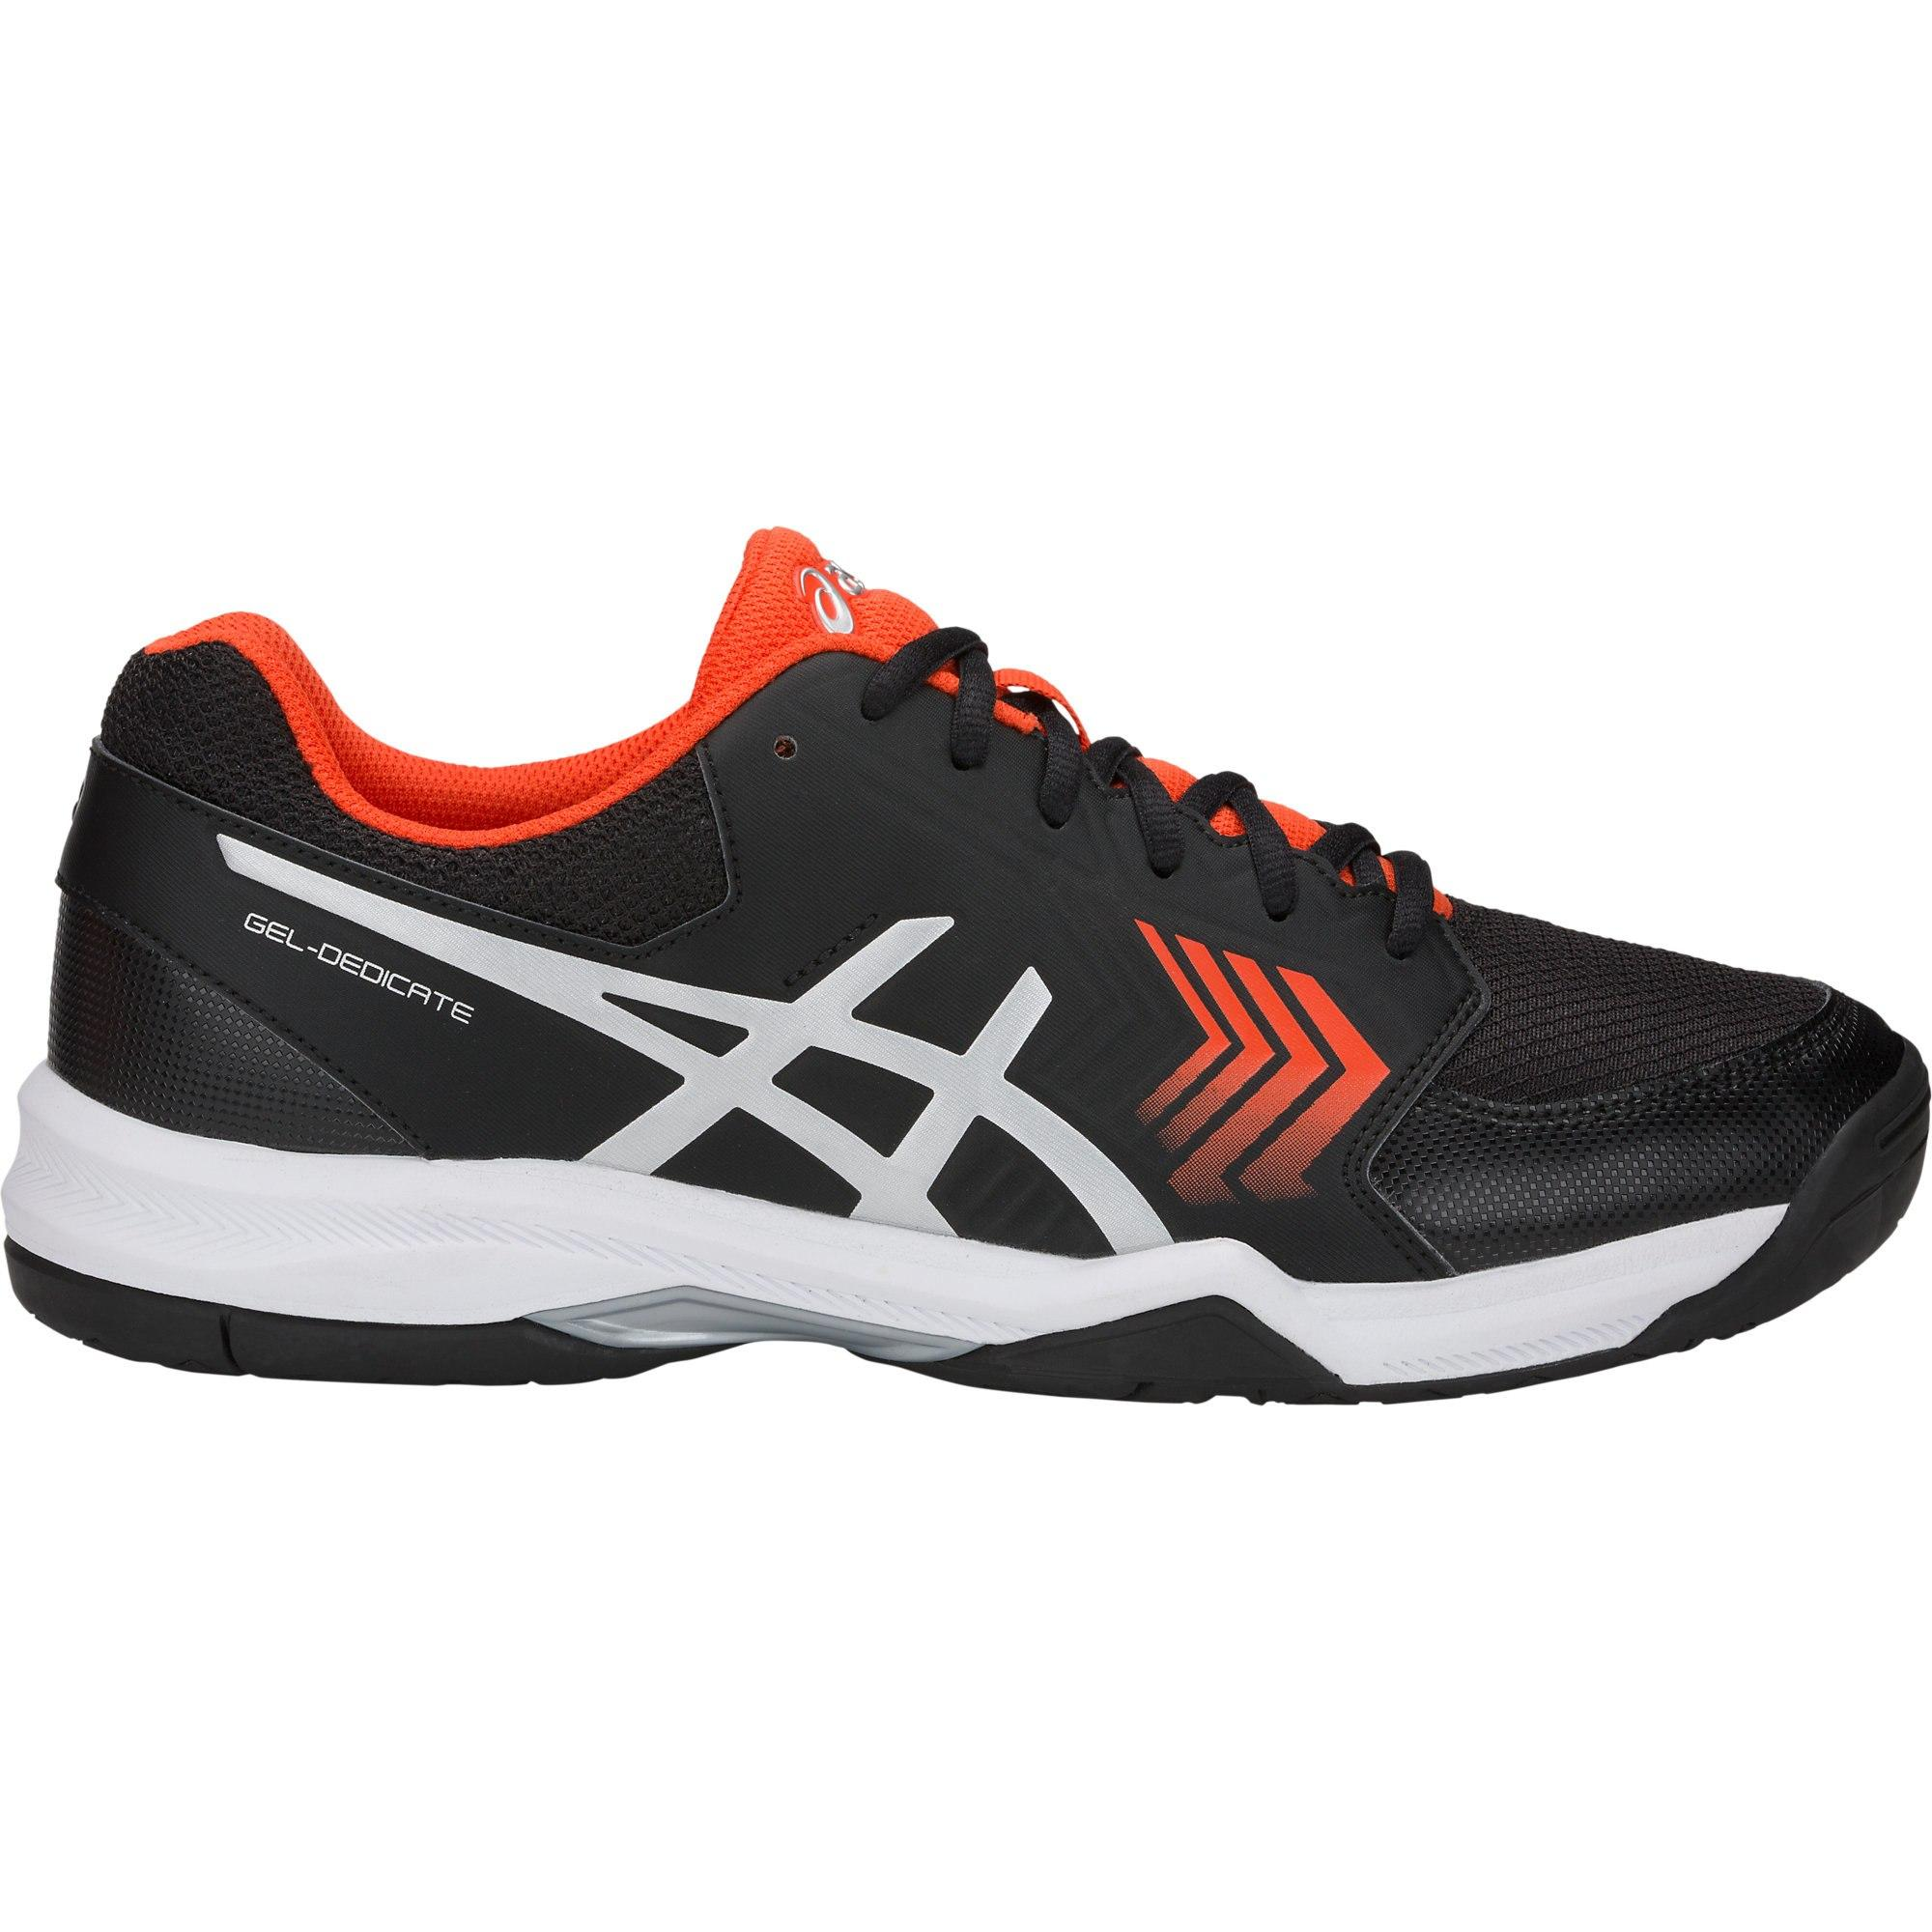 info for 20c1d 05930 Asics Mens GEL-Dedicate 5 Tennis Shoes - Black Silver - Tennisnuts.com